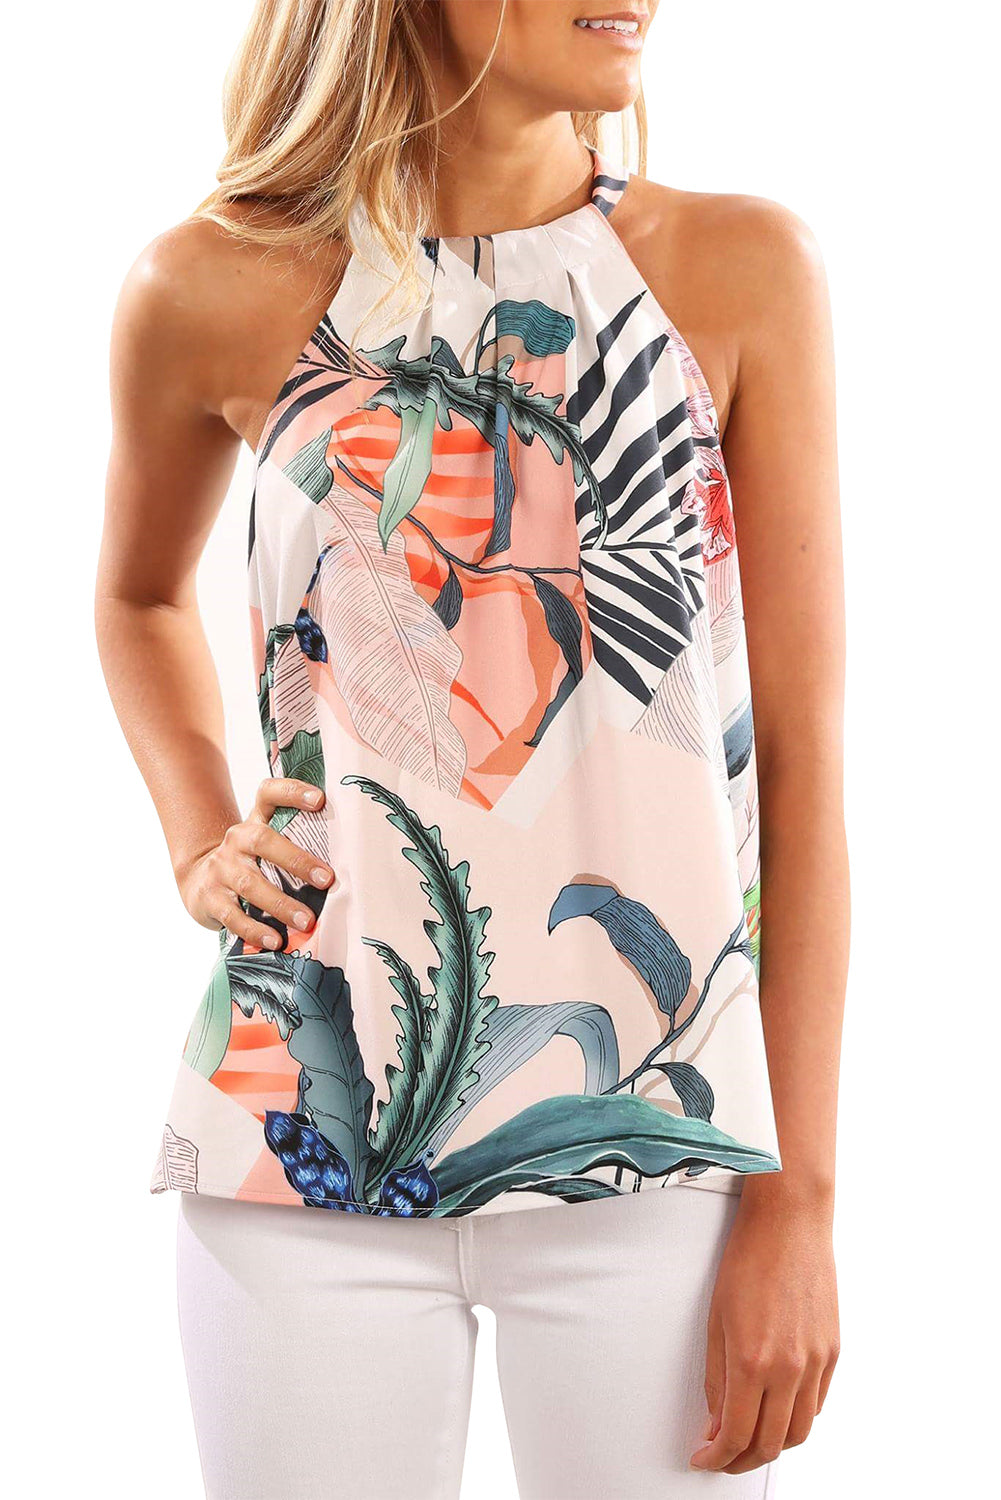 Sky Blue Sleeveless Flower Printed Tank Top